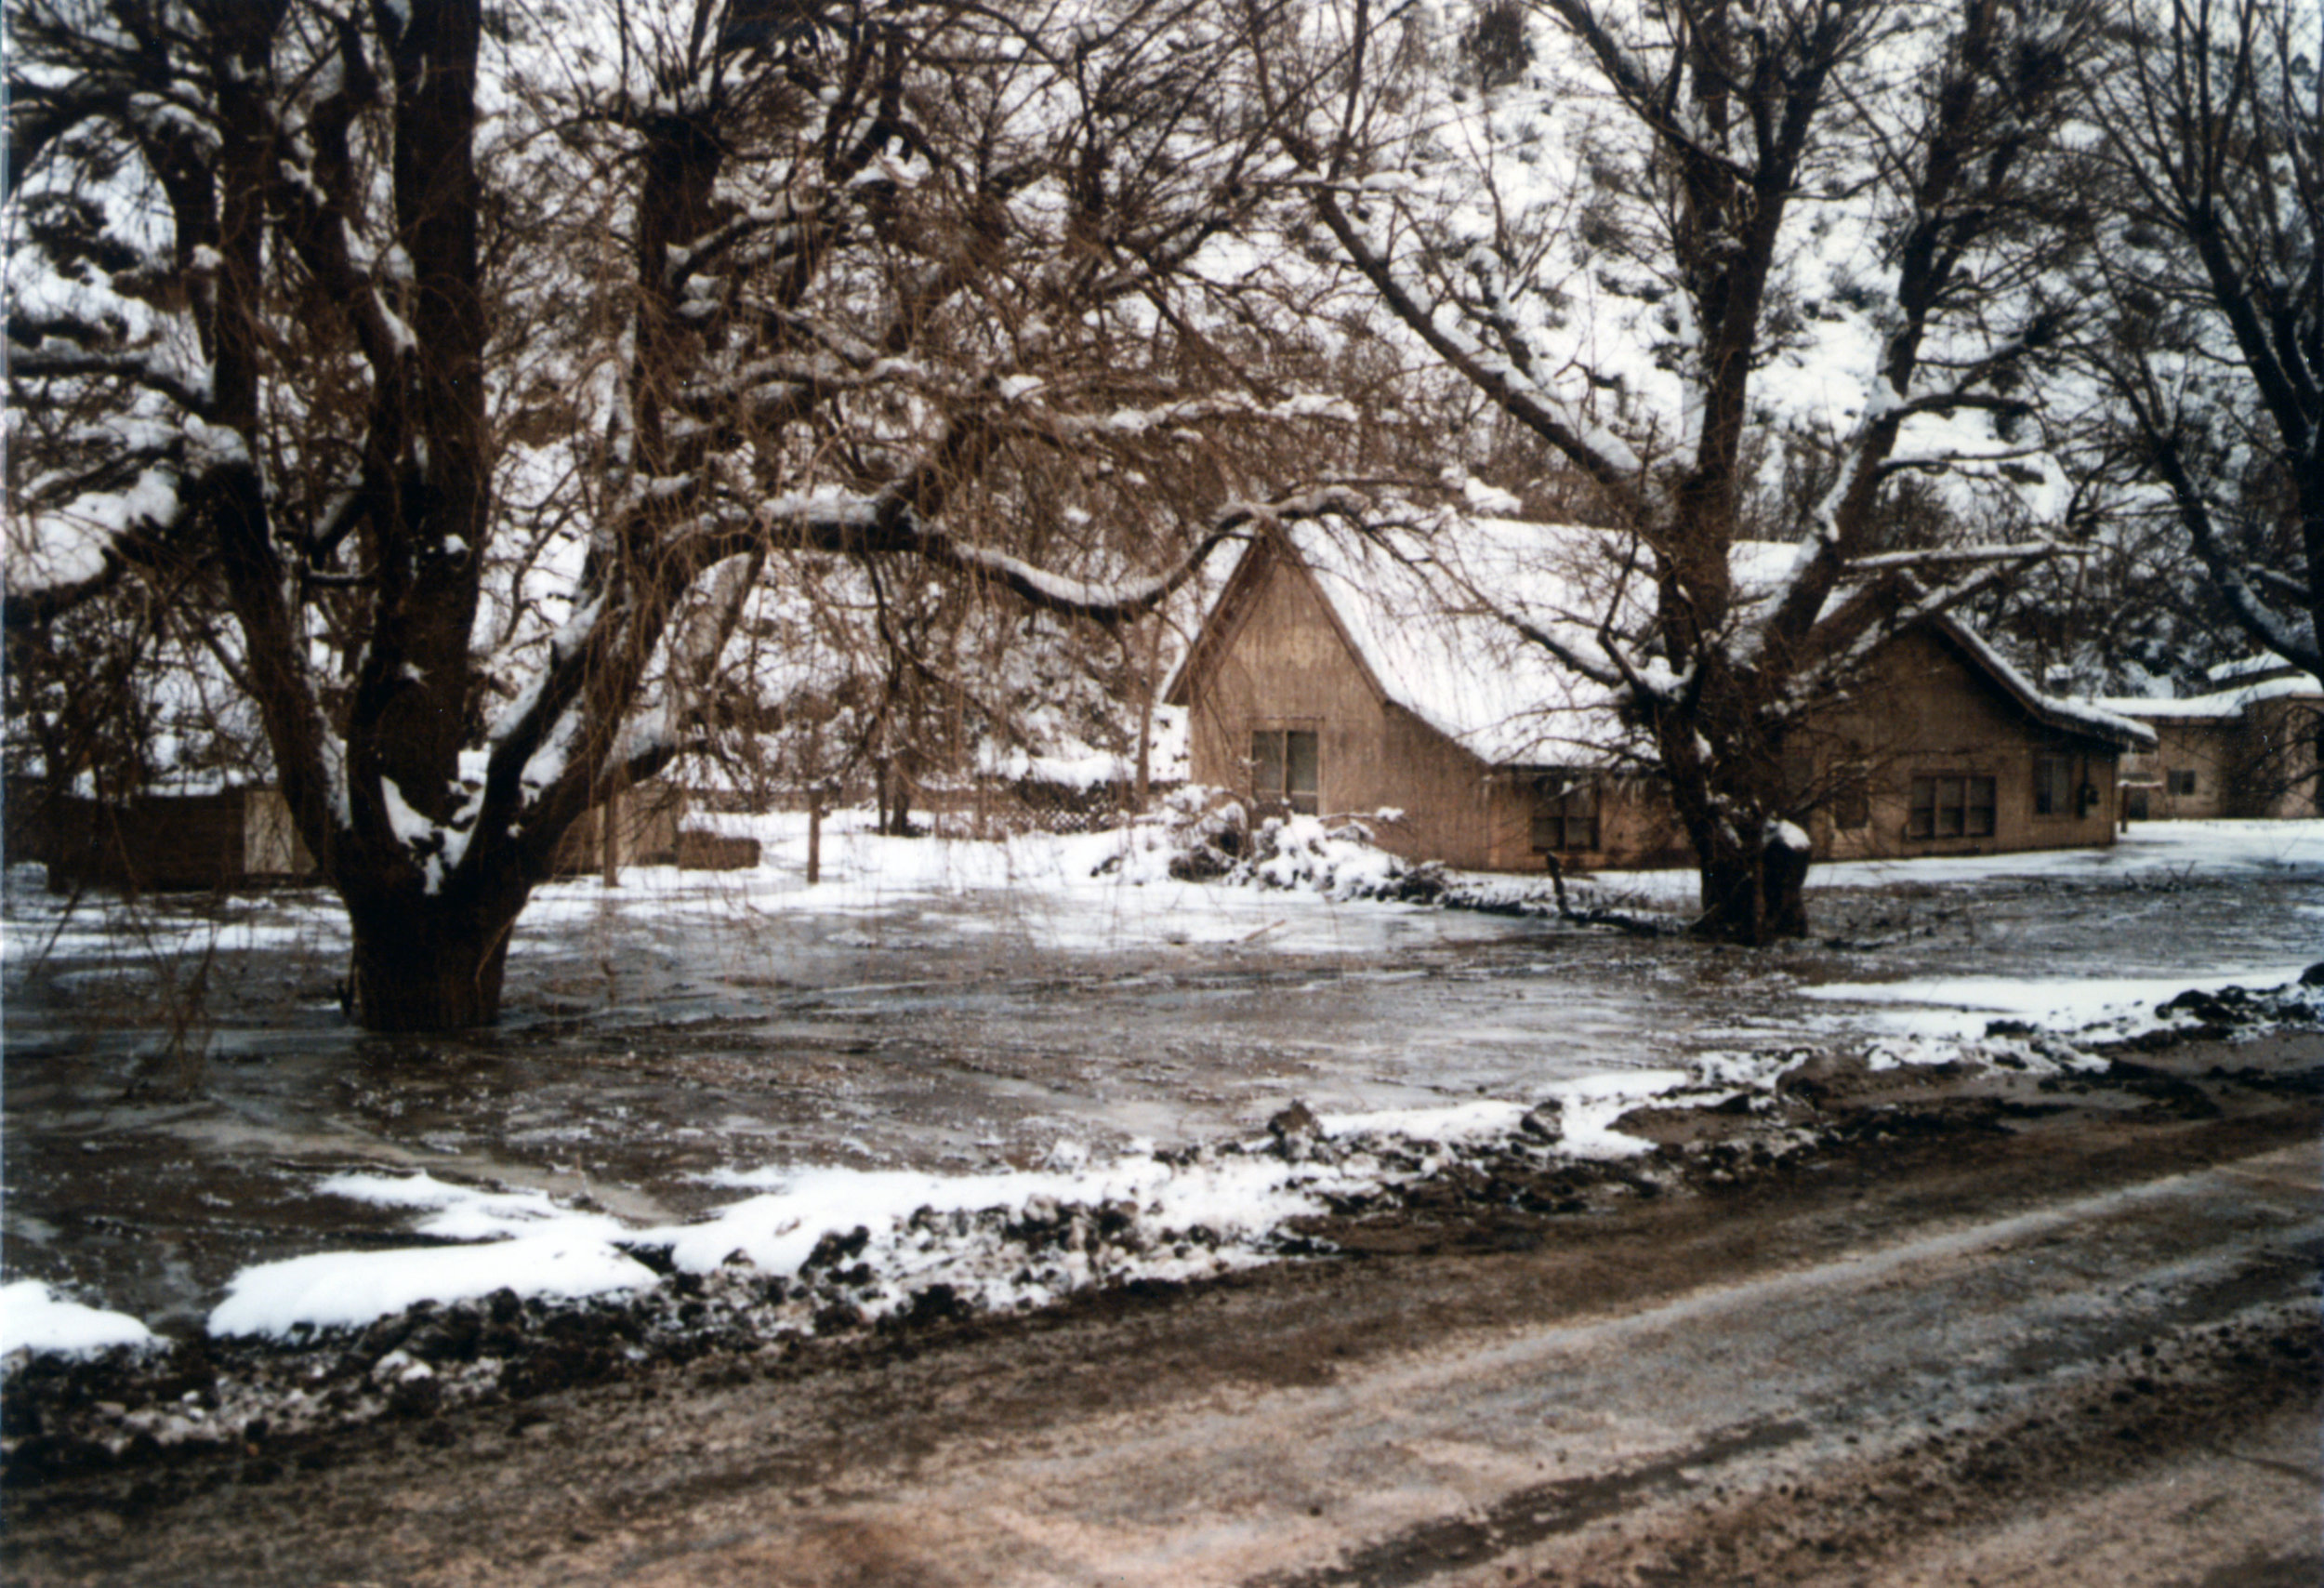 More buildings emerge as Thistle Lake is drained in December 1983. Photo courtesy of the Utah State Archives and Records Service.